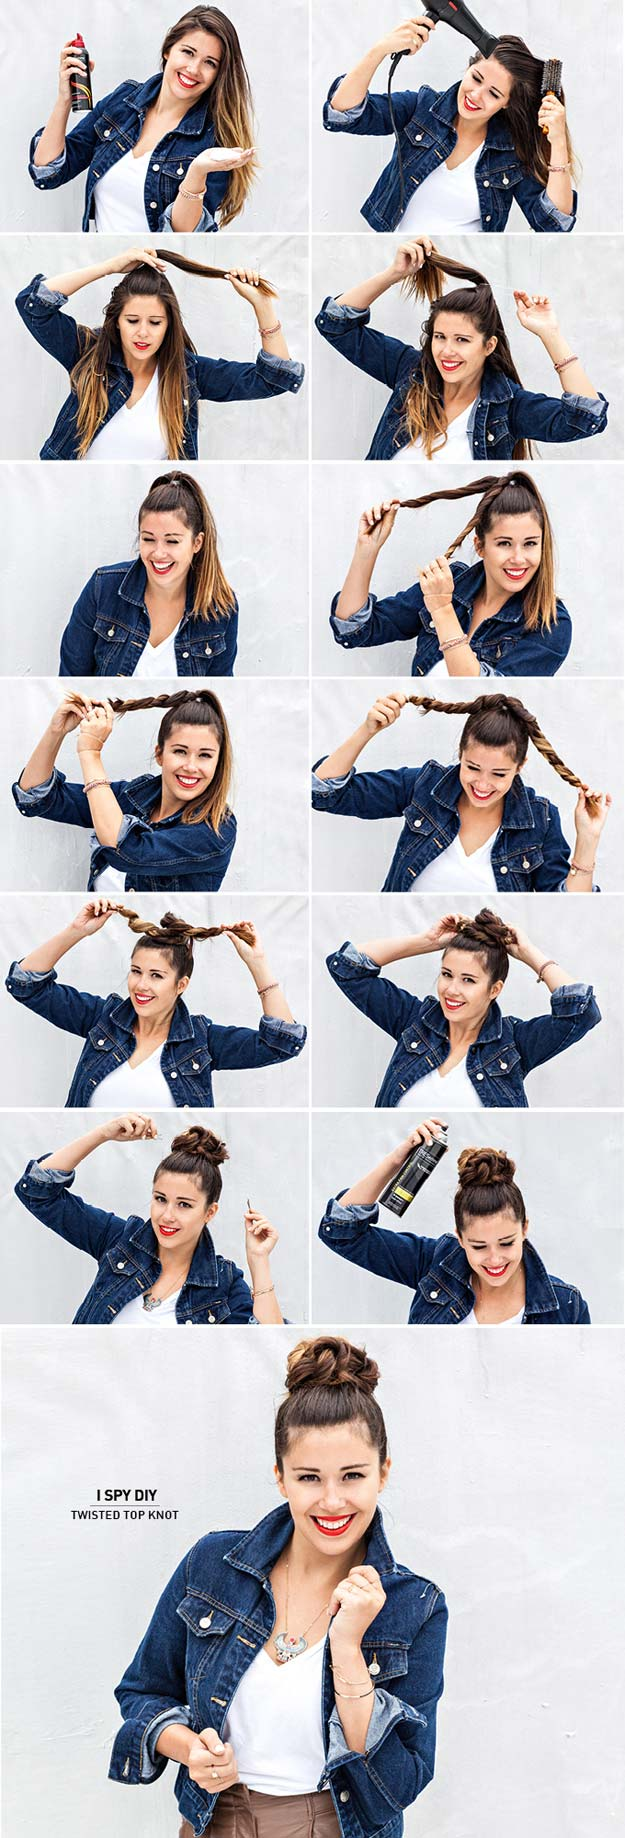 Best Hair Braiding Tutorials - Twisted Top Knot - Easy Step by Step Tutorials for Braids - How To Braid Fishtail, French Braids, Flower Crown, Side Braids, Cornrows, Updos - Cool Braided Hairstyles for Girls, Teens and Women - School, Day and Evening, Boho, Casual and Formal Looks #hairstyles #braiding #braidingtutorials #diyhair